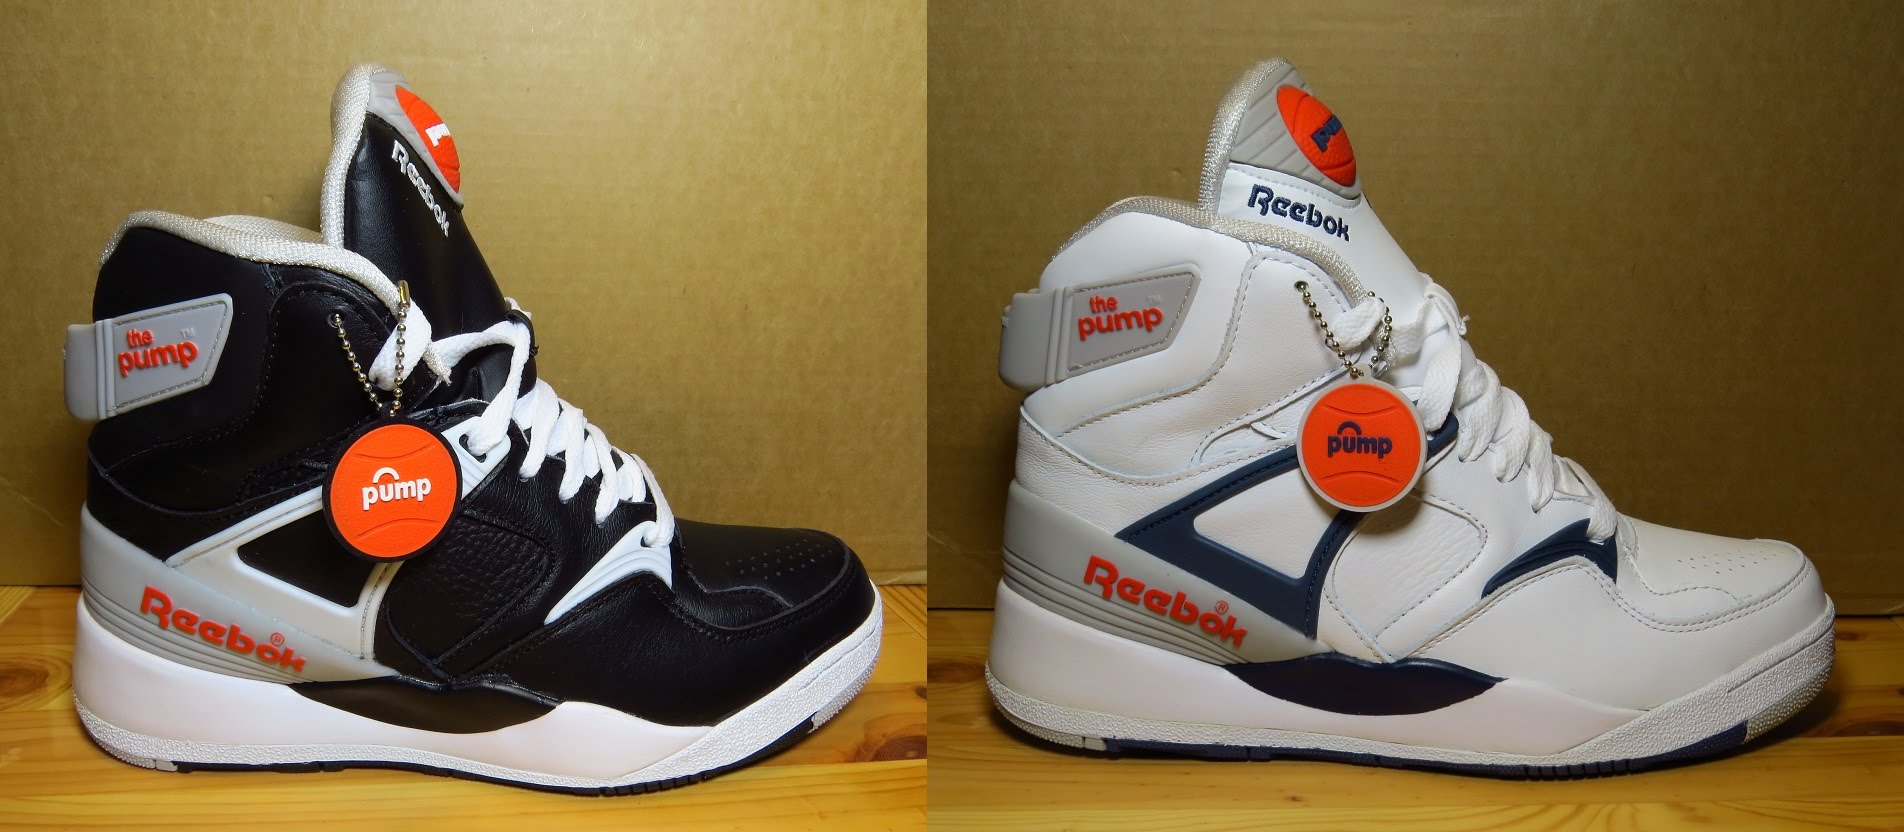 reebok the pump 2014 25th anniversary reebok pump CBZFUKT